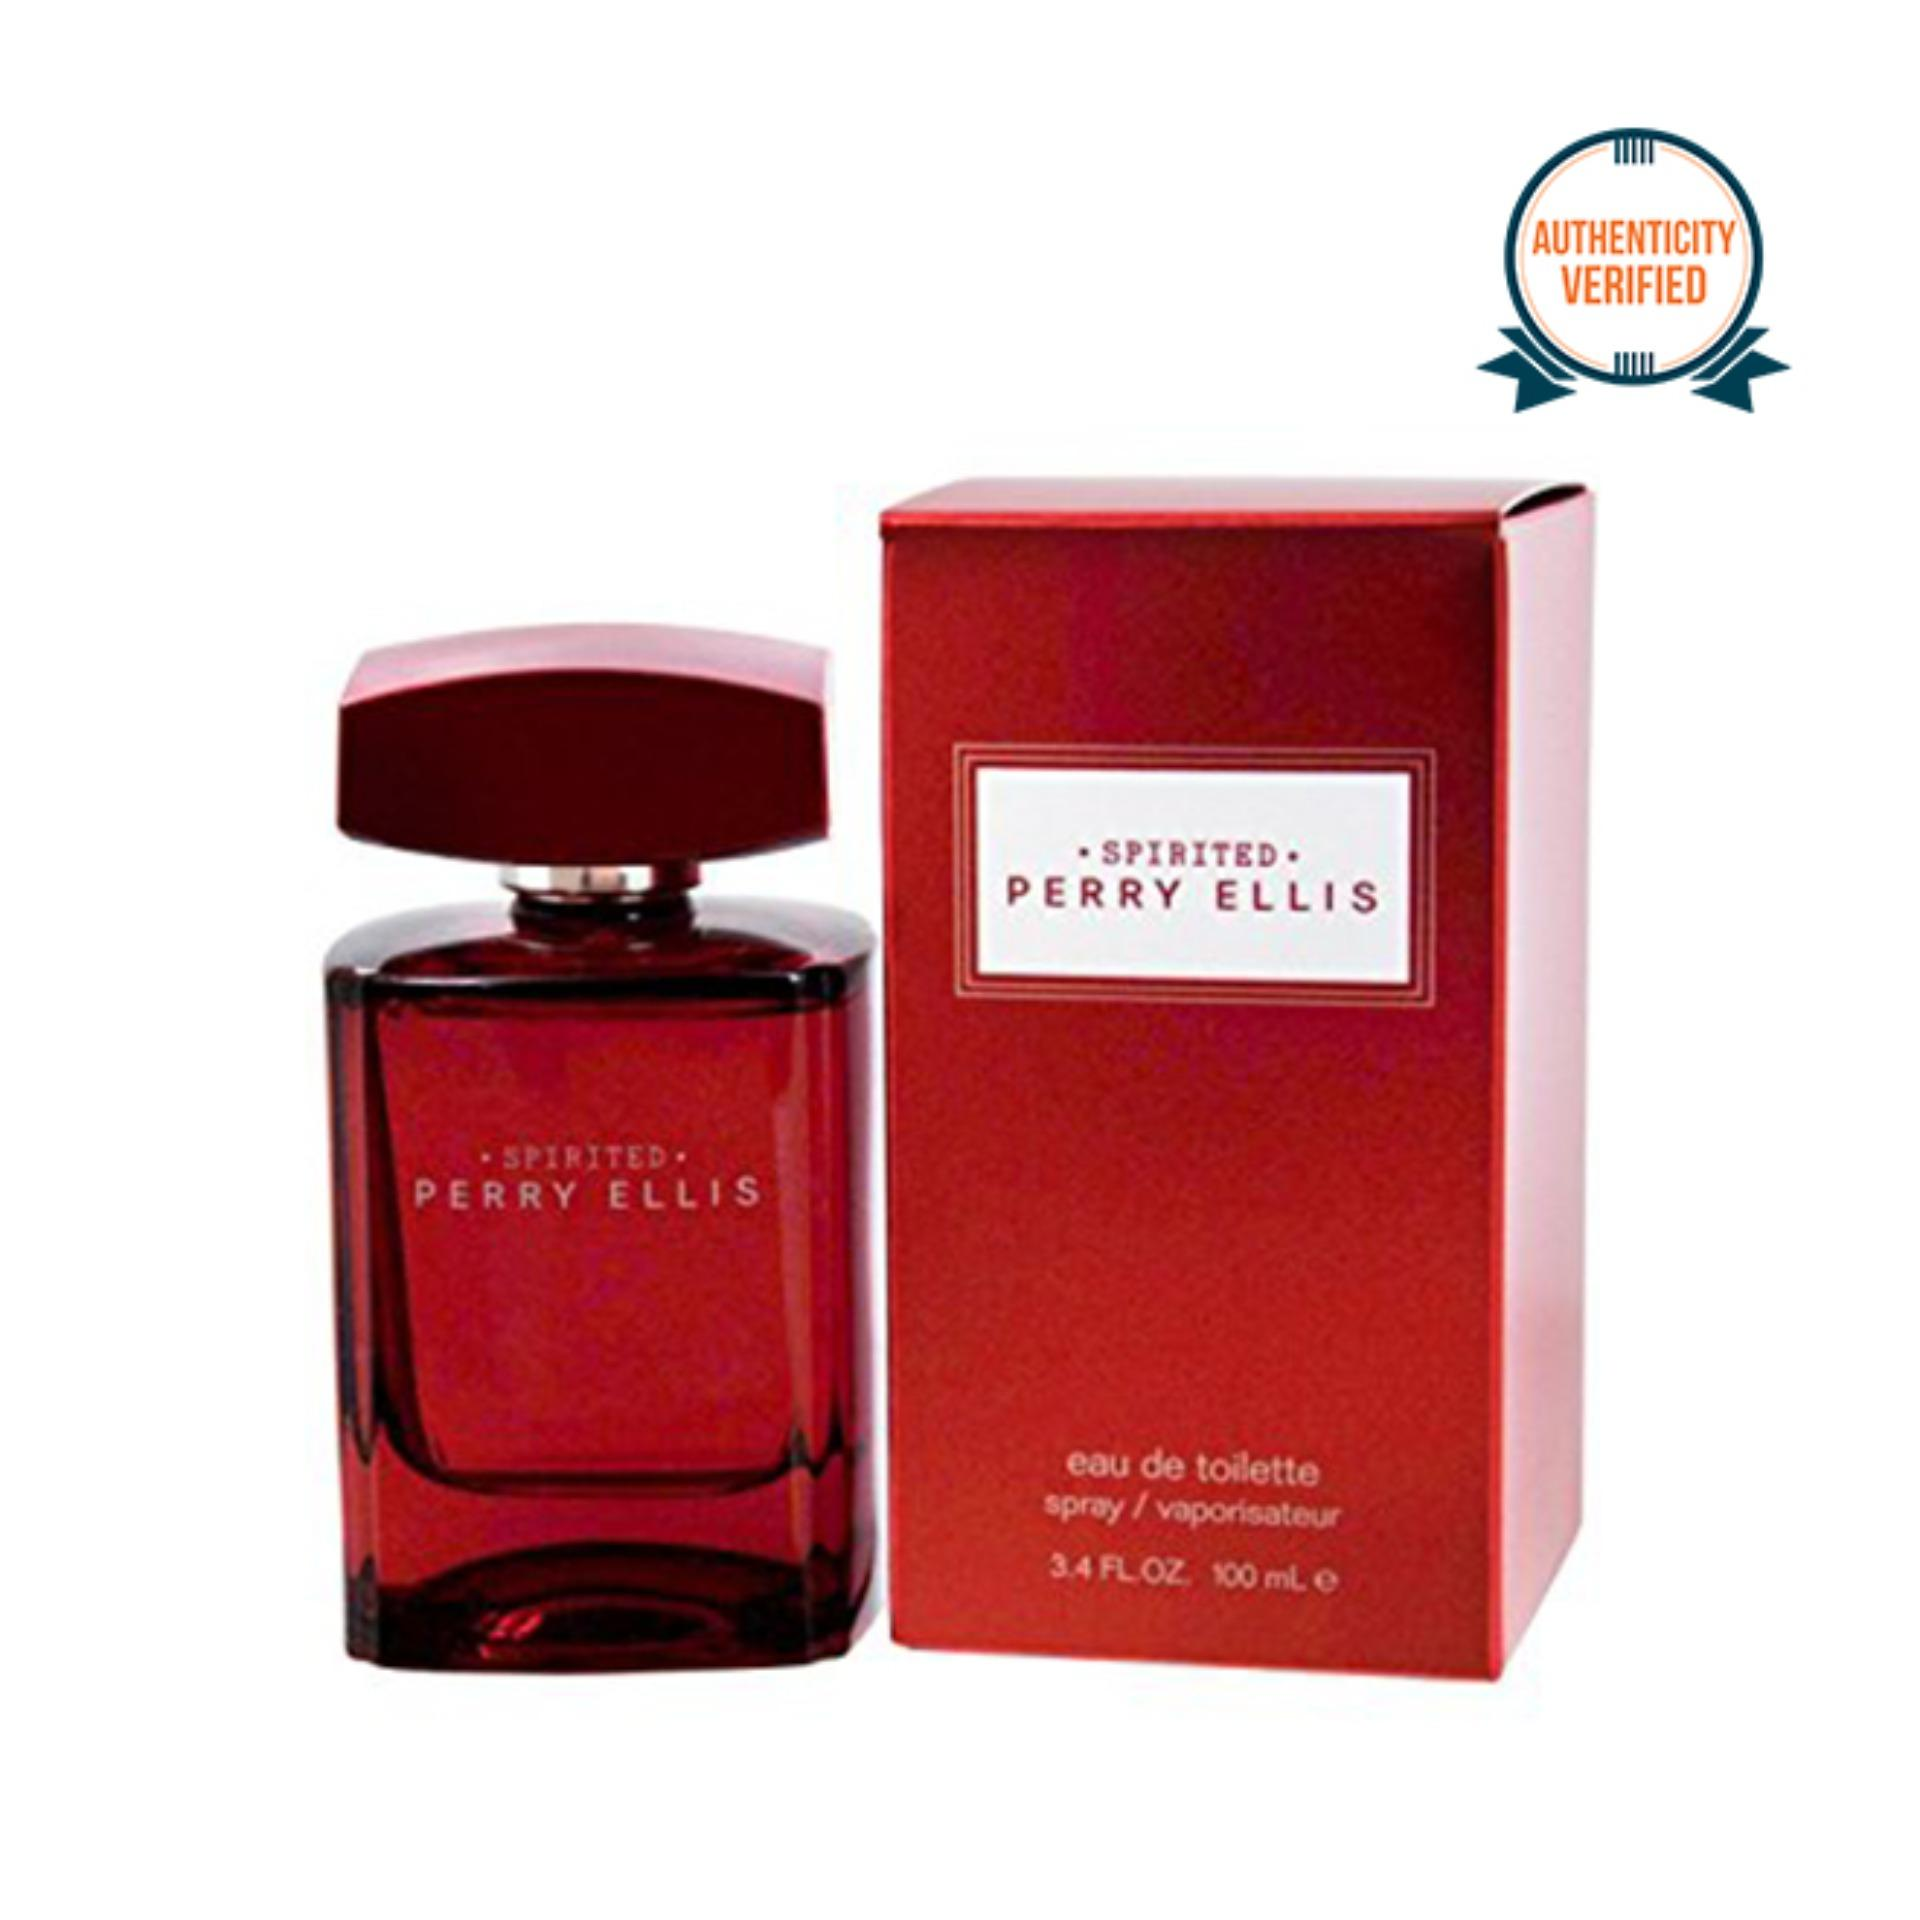 Perry Ellis Spirited Eau de Toilette for Men 100ml